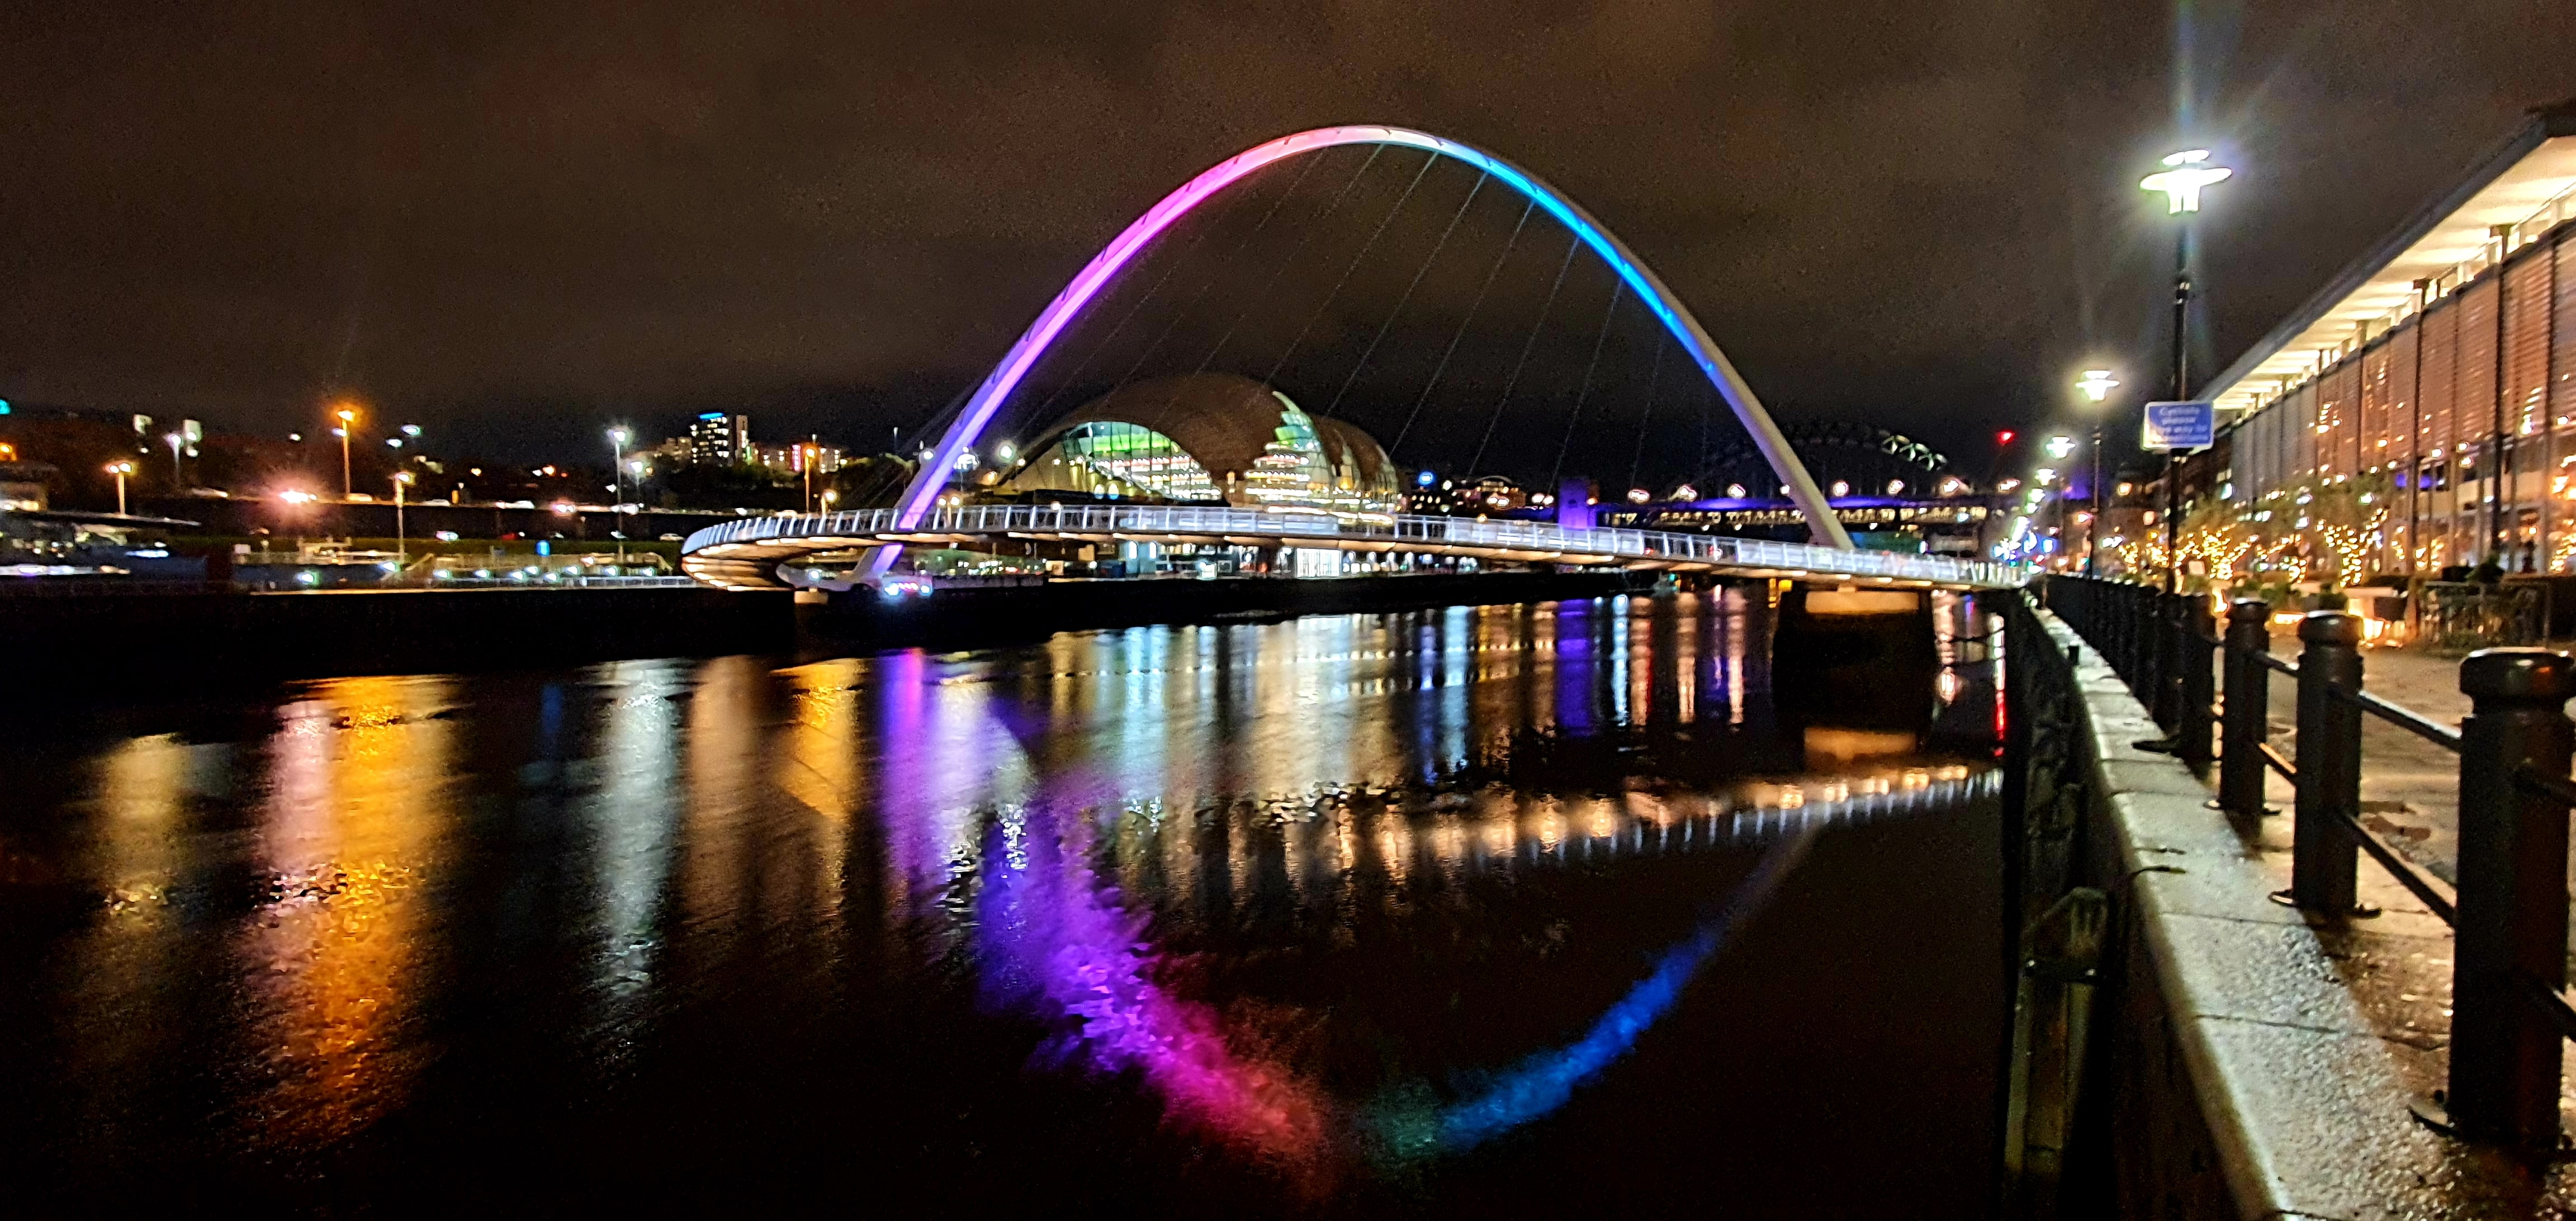 An evening In Gateshead Millennium Bridge, Newcastle Upon Tyne, UK.